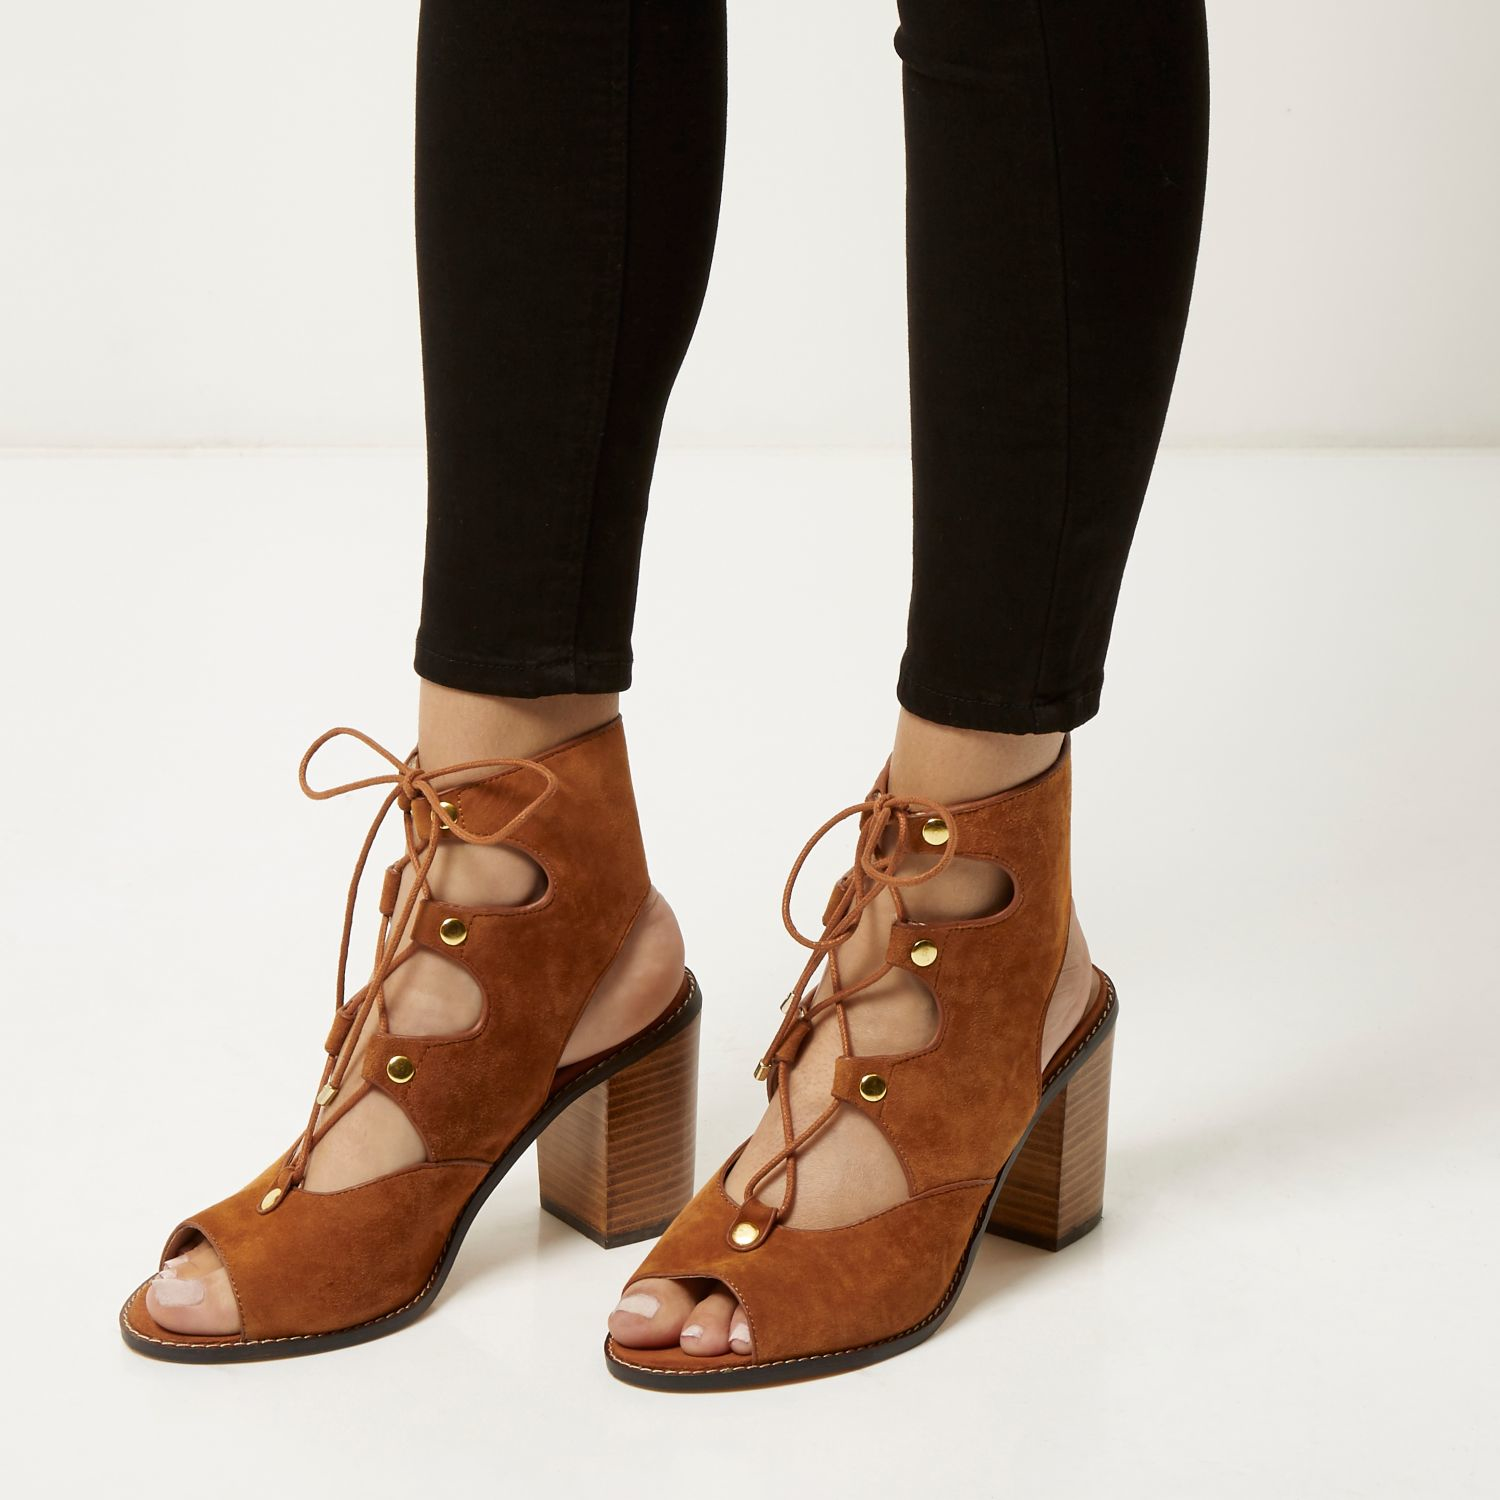 a301d11c809c River Island Tan Suede Ghillie Lace Up Heeled Sandals in Brown - Lyst